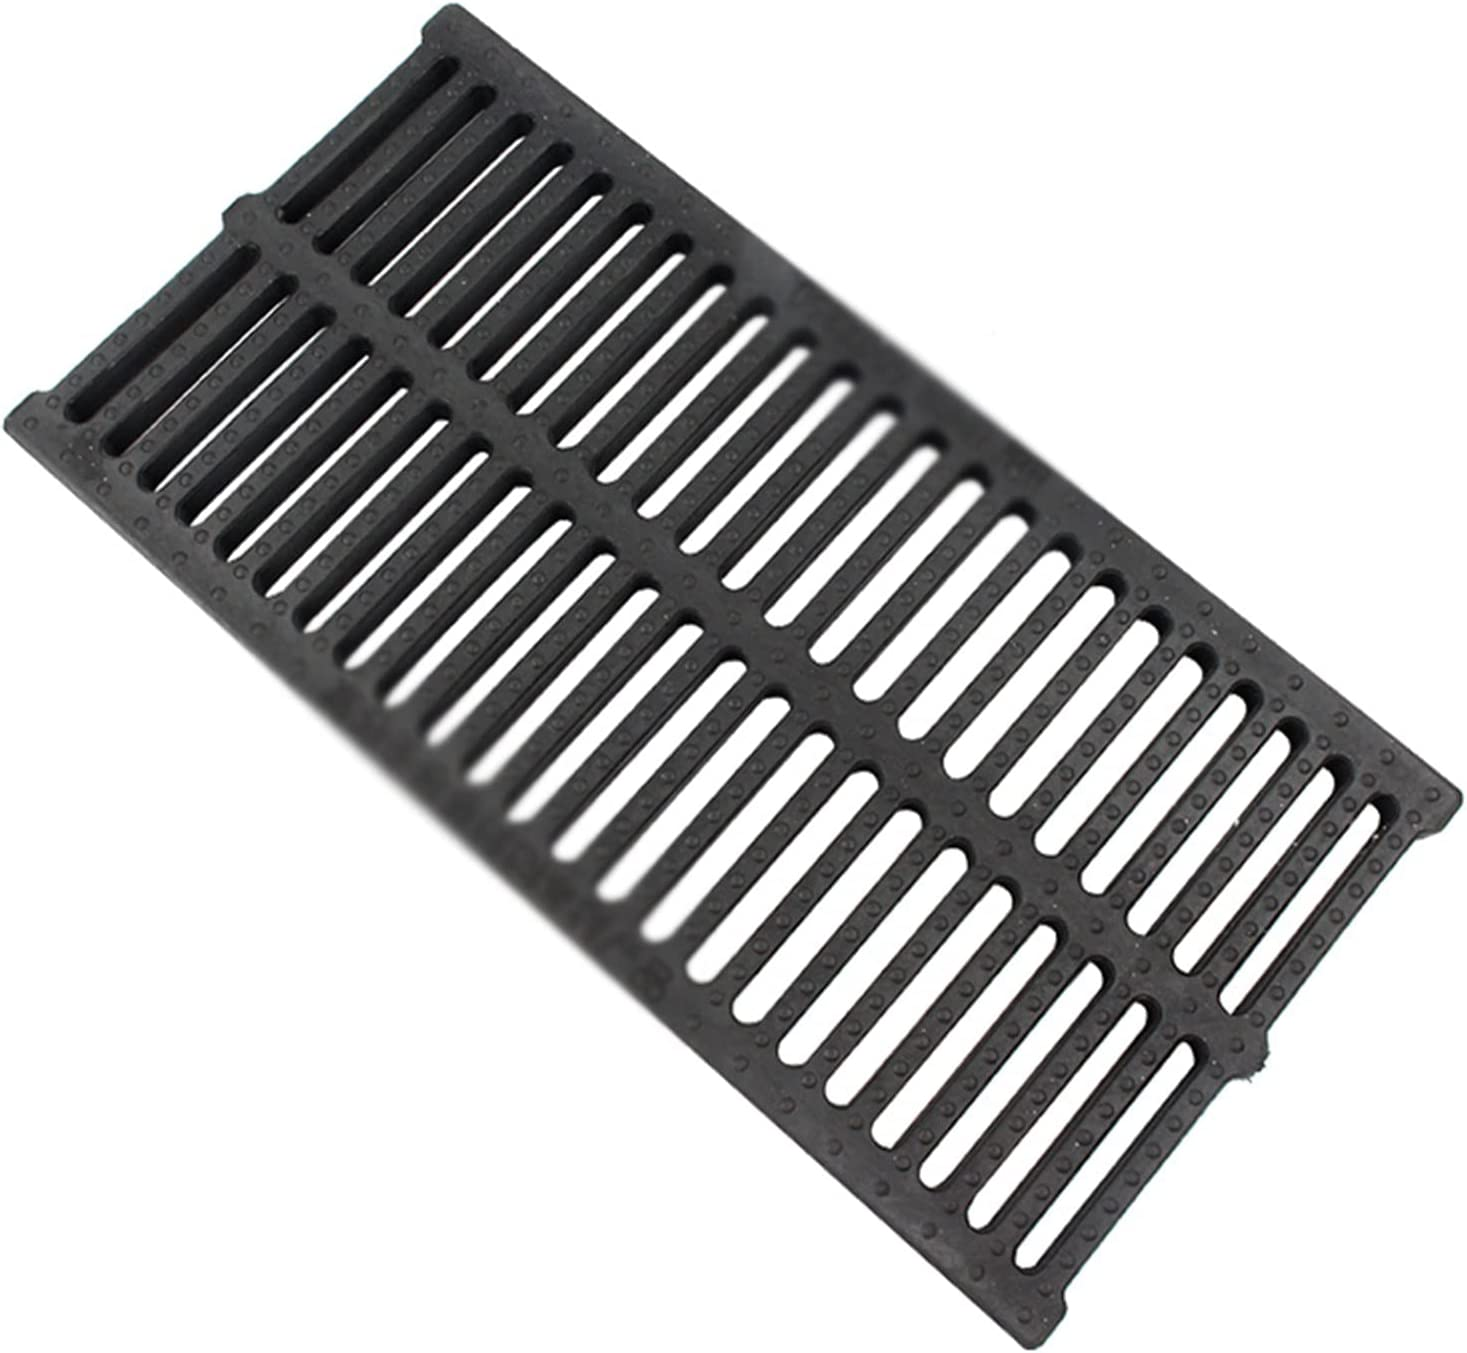 lkjhg Drain Strainers,Sewer Cover Grates Ditch Today's only Sewage Kitchen Jacksonville Mall